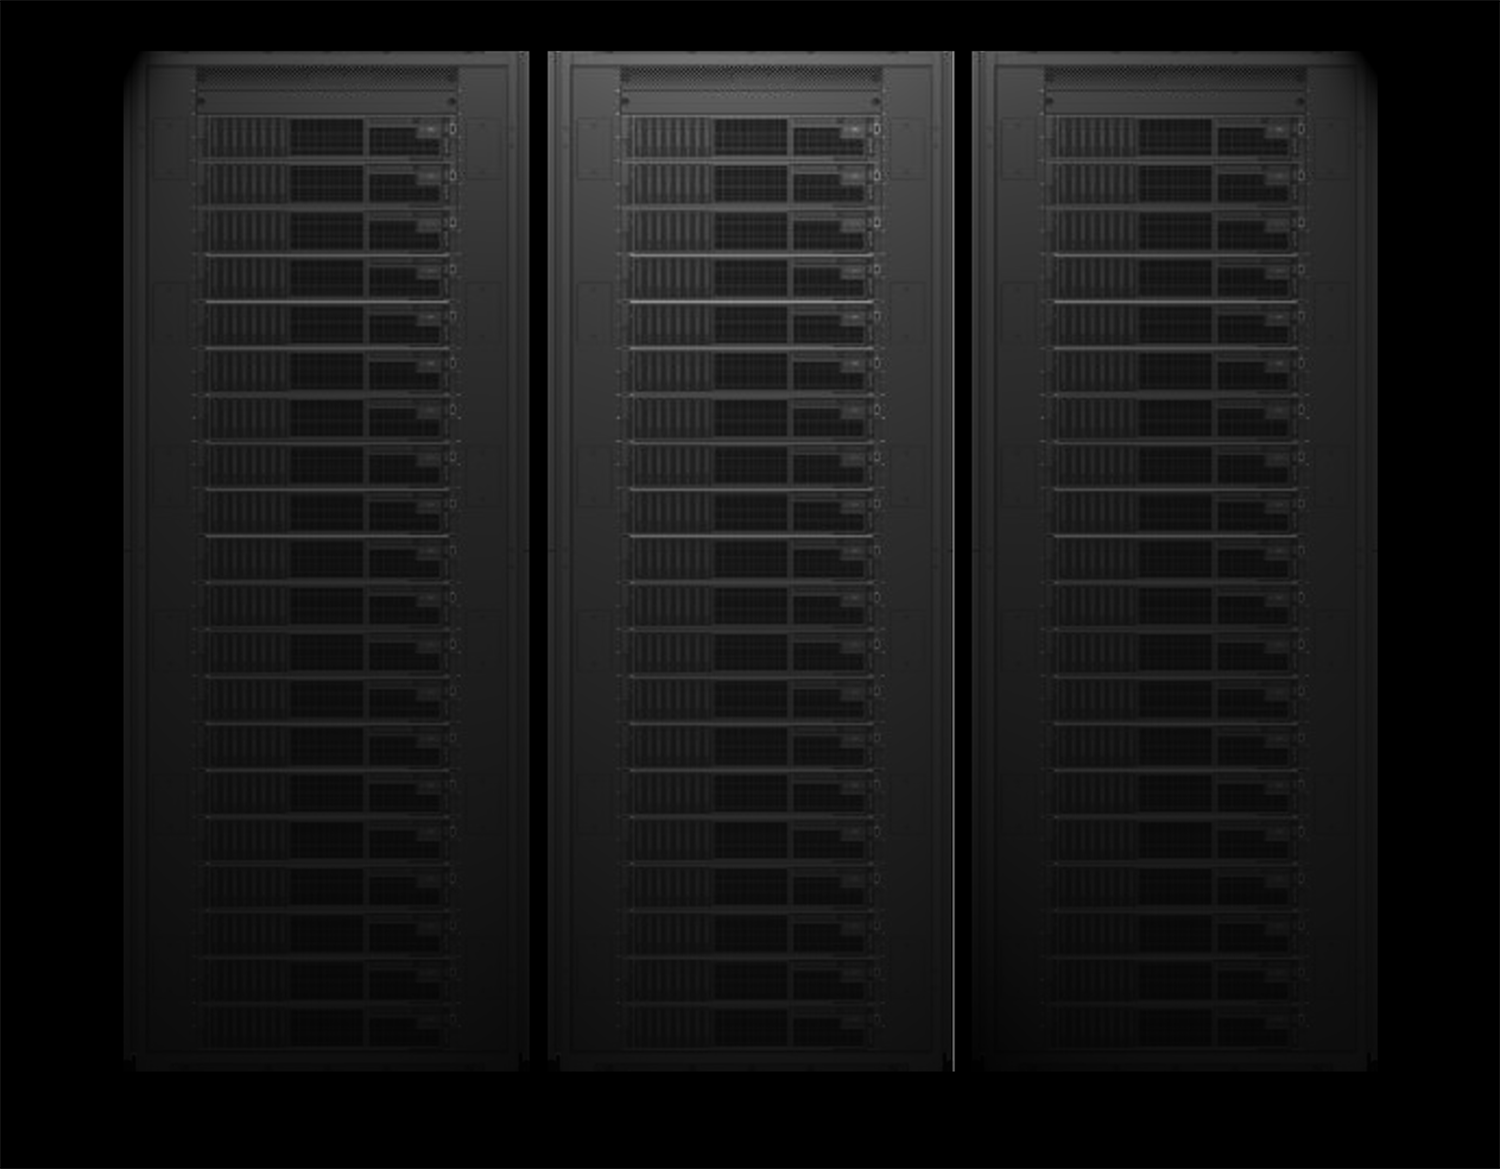 Rendering of two server racks